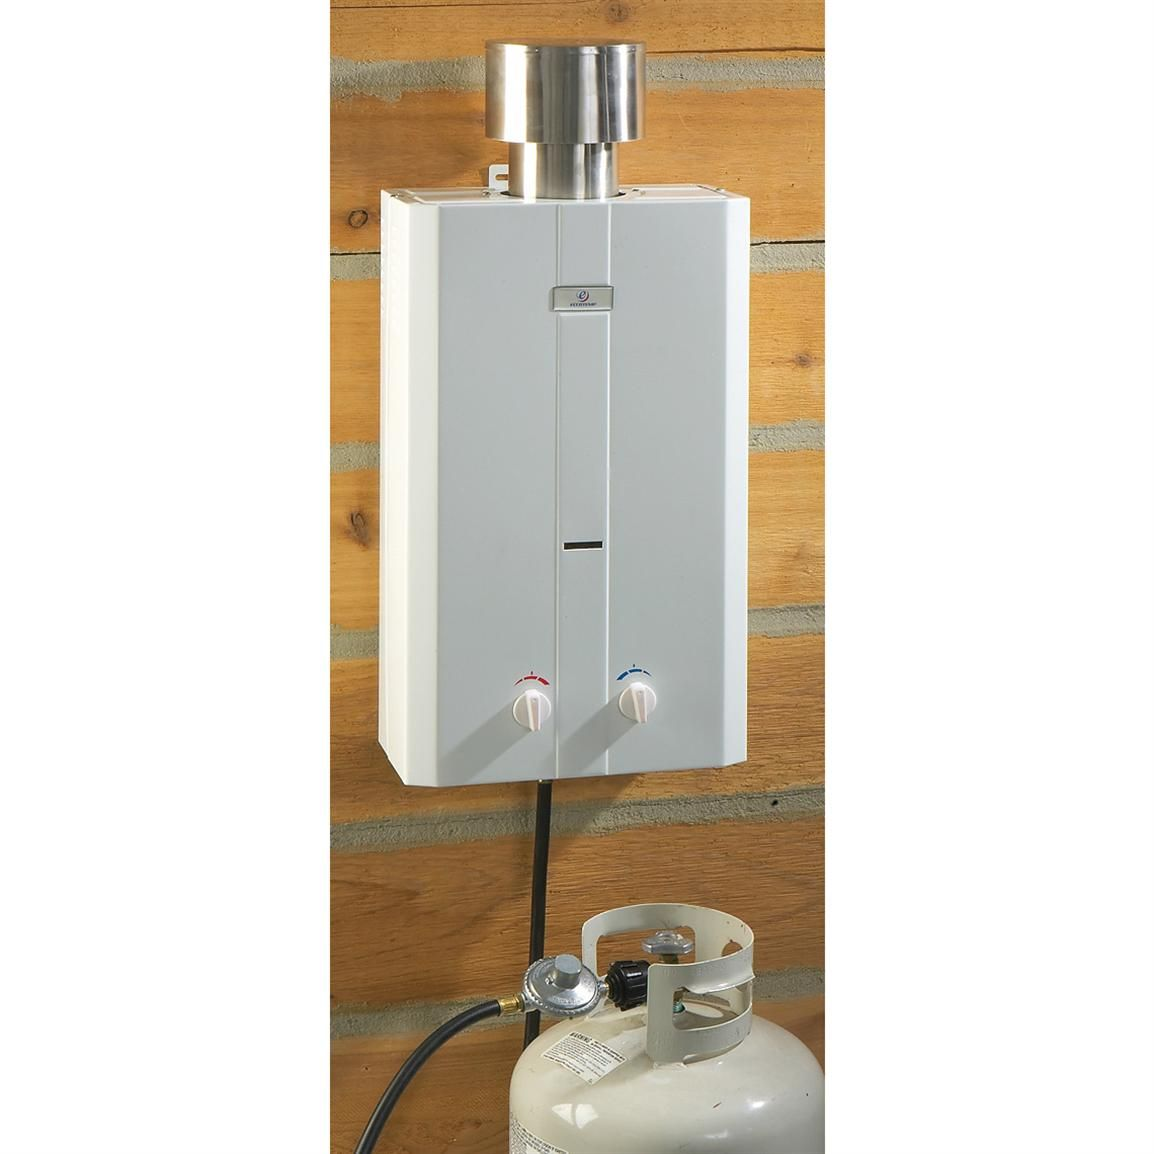 Great Eccotemp L10 Portable Outdoor Tankless Water Heater